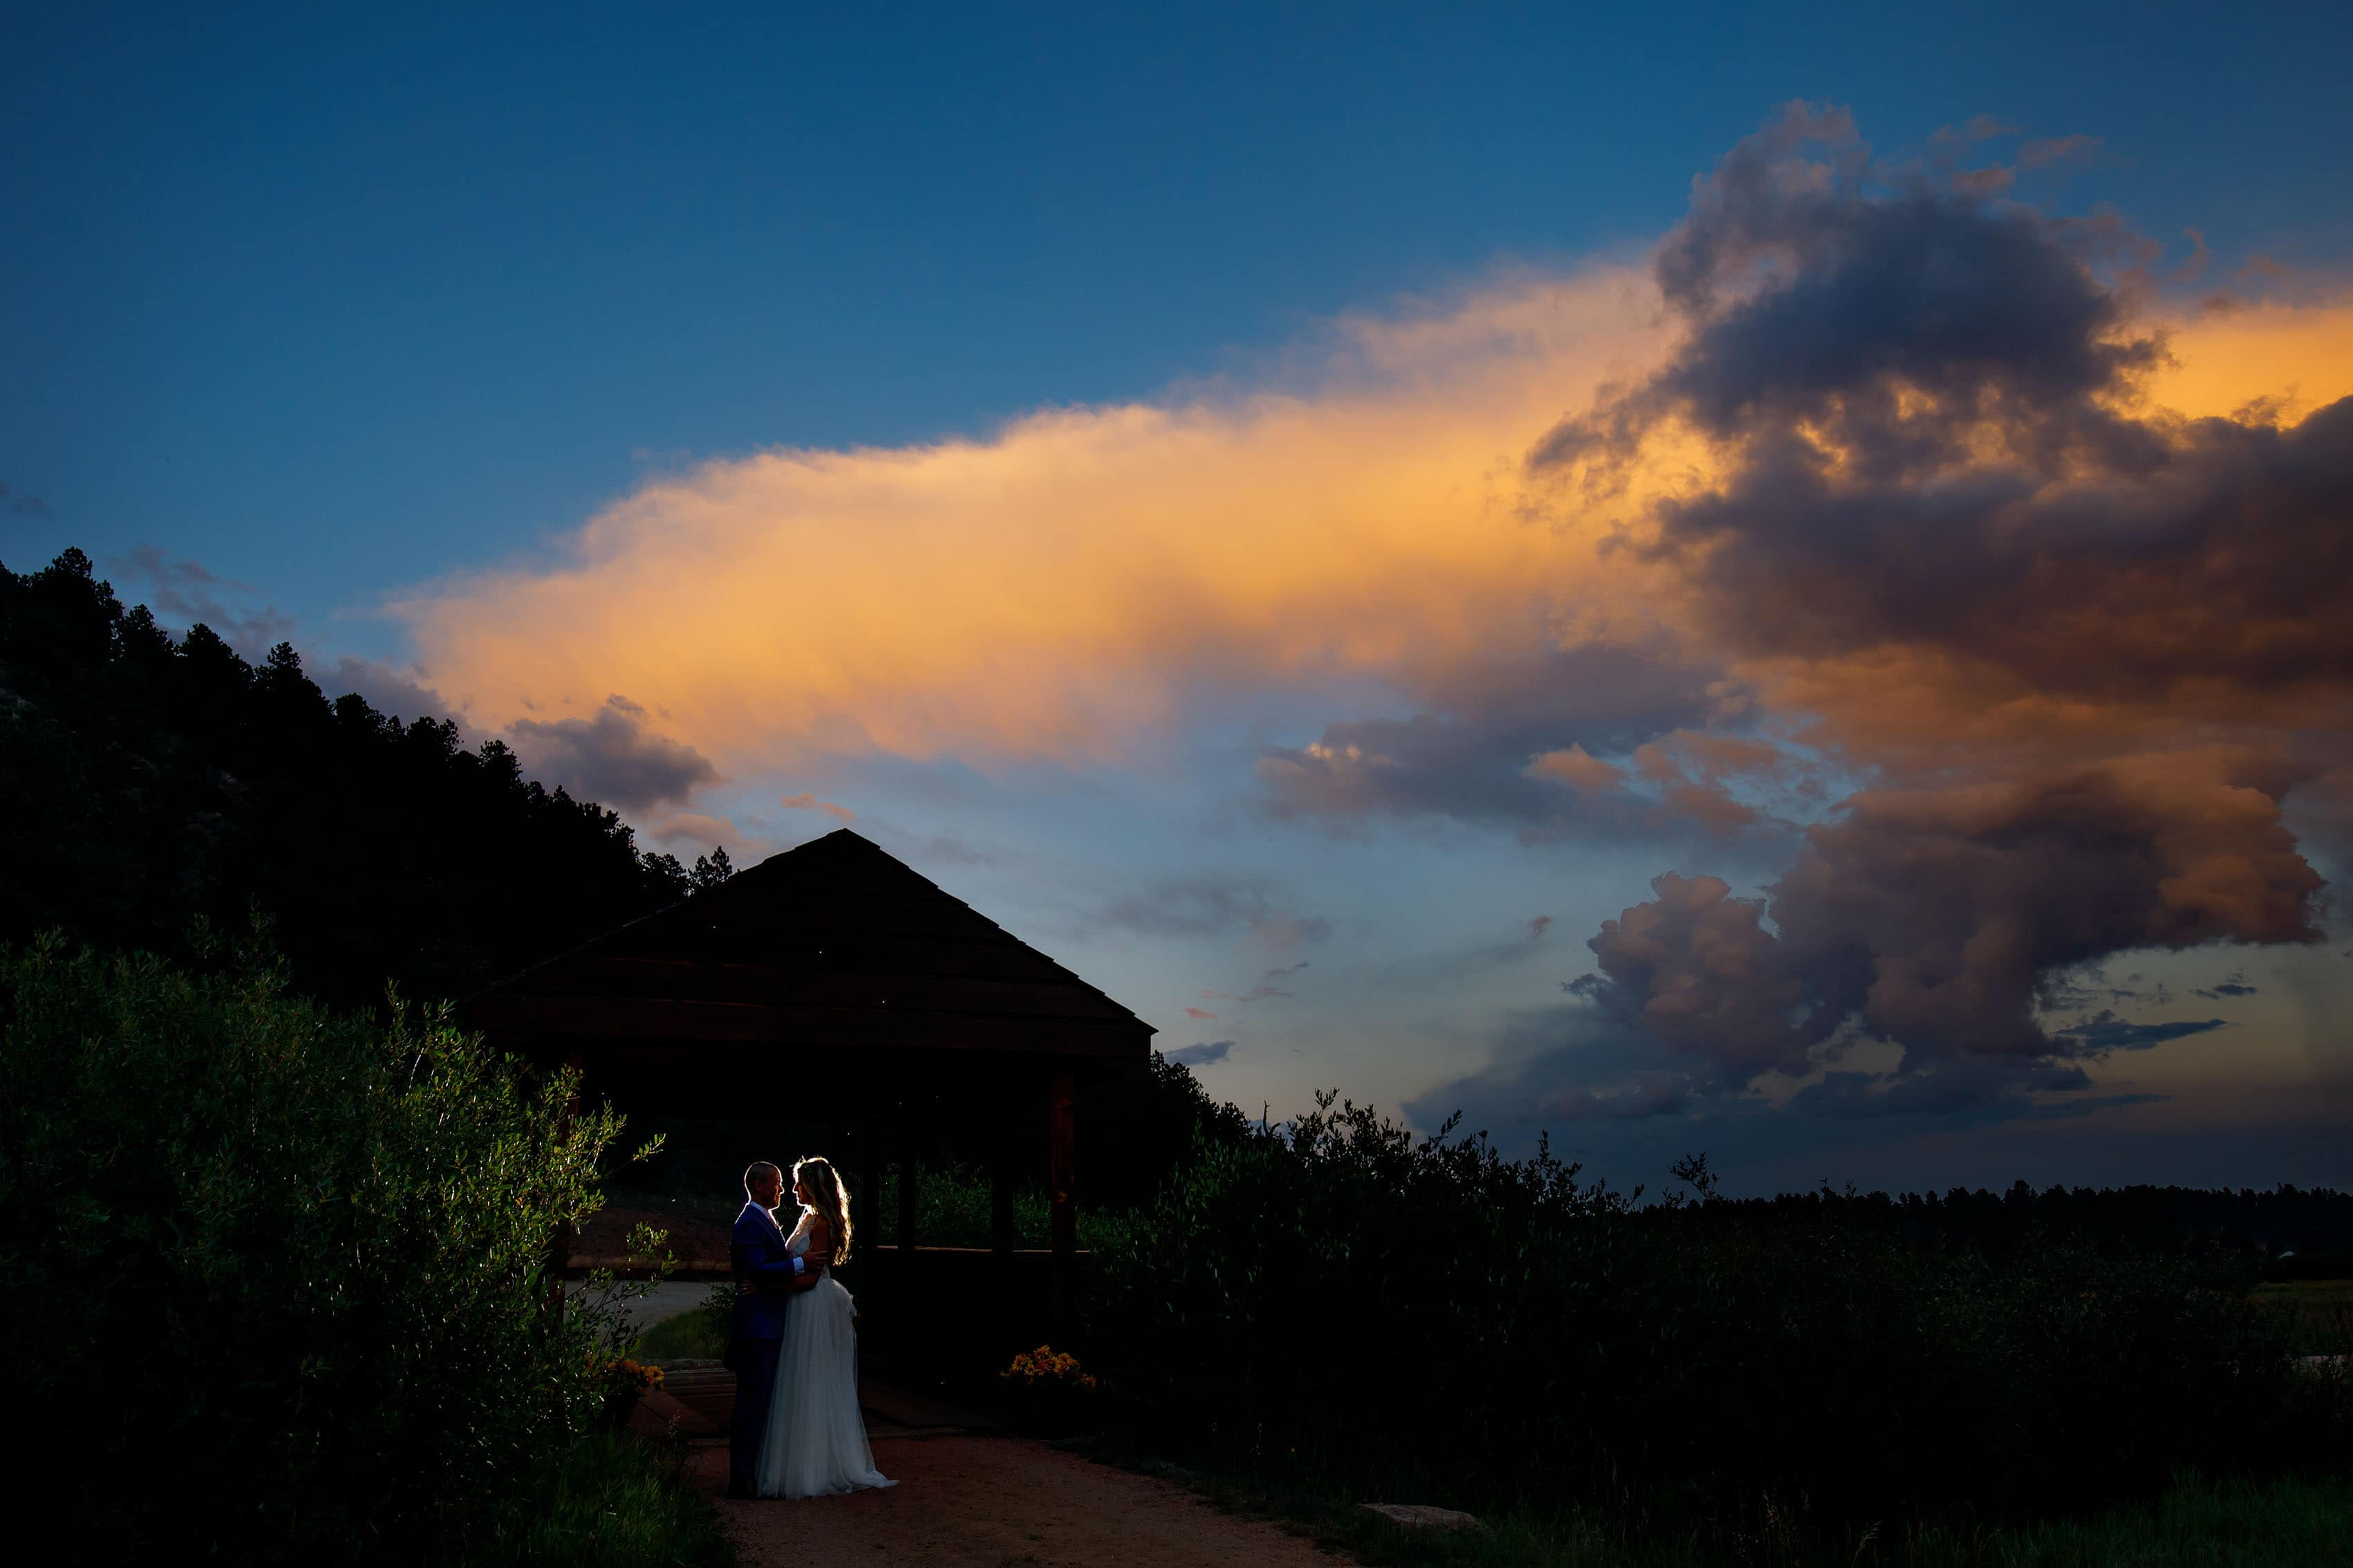 The couple are illuminated on the bridge at sunset during their summer barn wedding at Deer Creek Valley Ranch